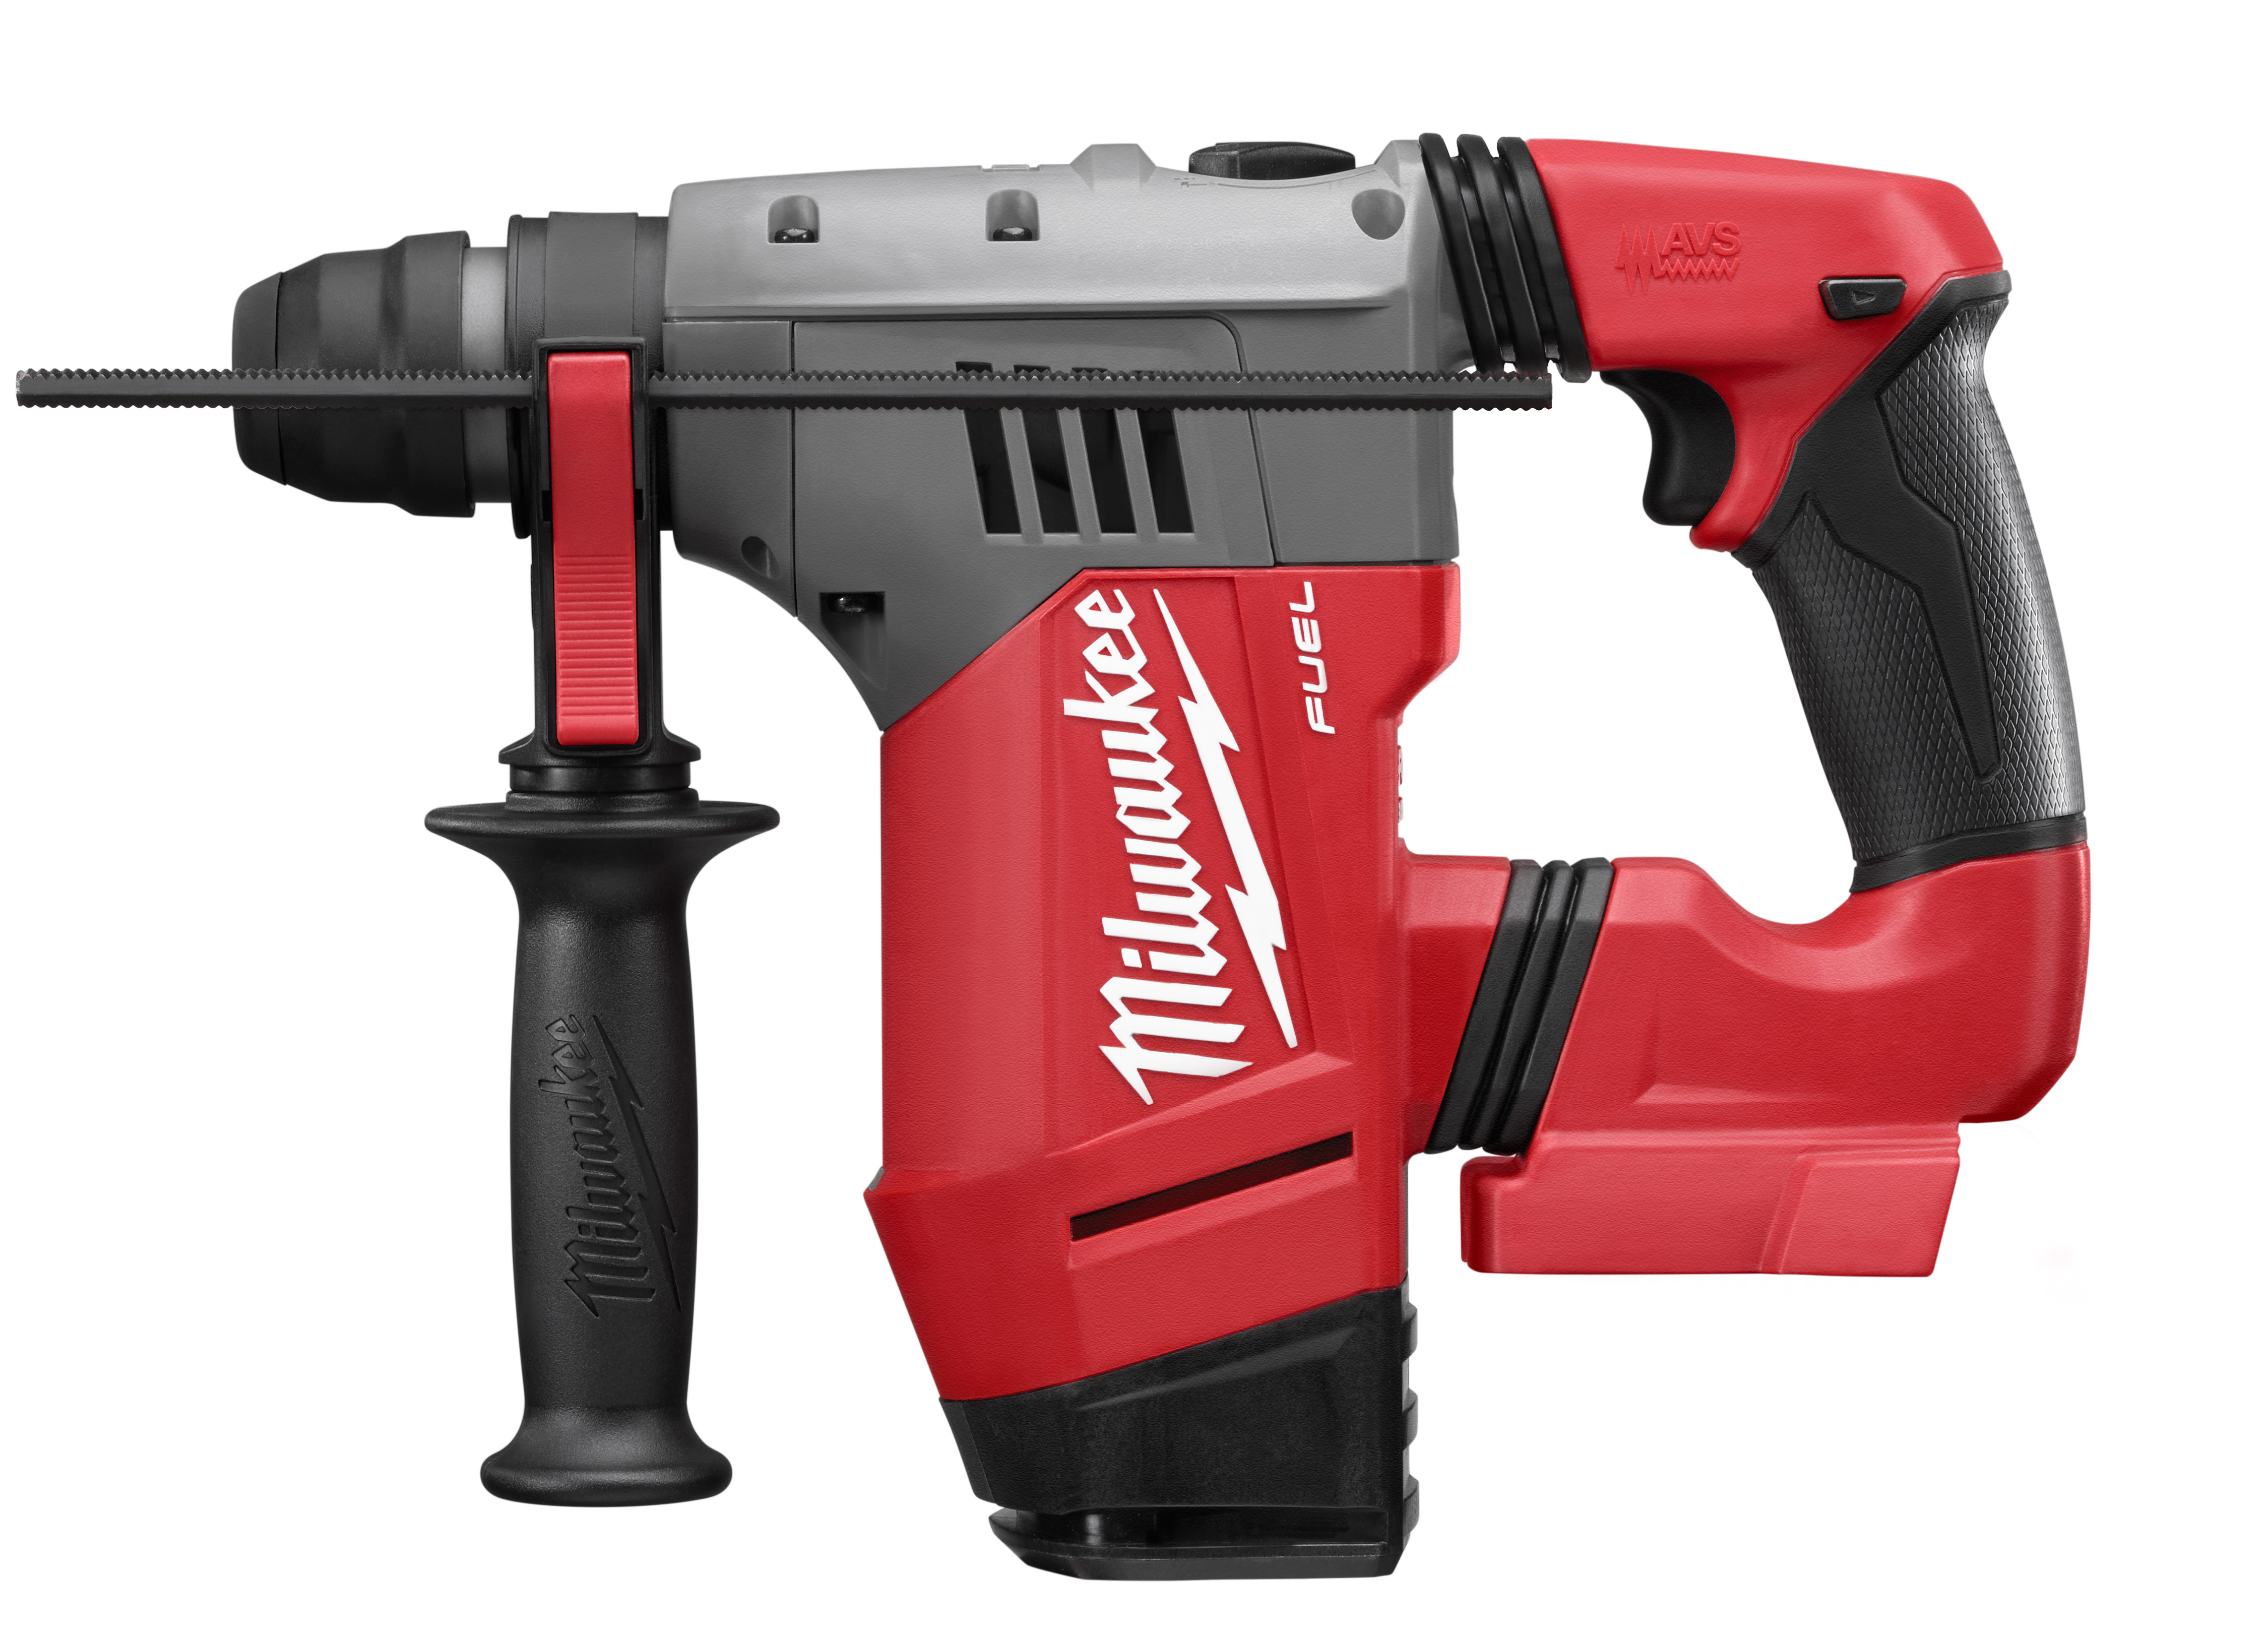 Milwaukee® M18™ FUEL™ 2715-20 Cordless Rotary Hammer, 1-1/8 in Keyless/SDS Plus® Chuck, 18 VDC, 1350 rpm No-Load, Lithium-Ion Battery